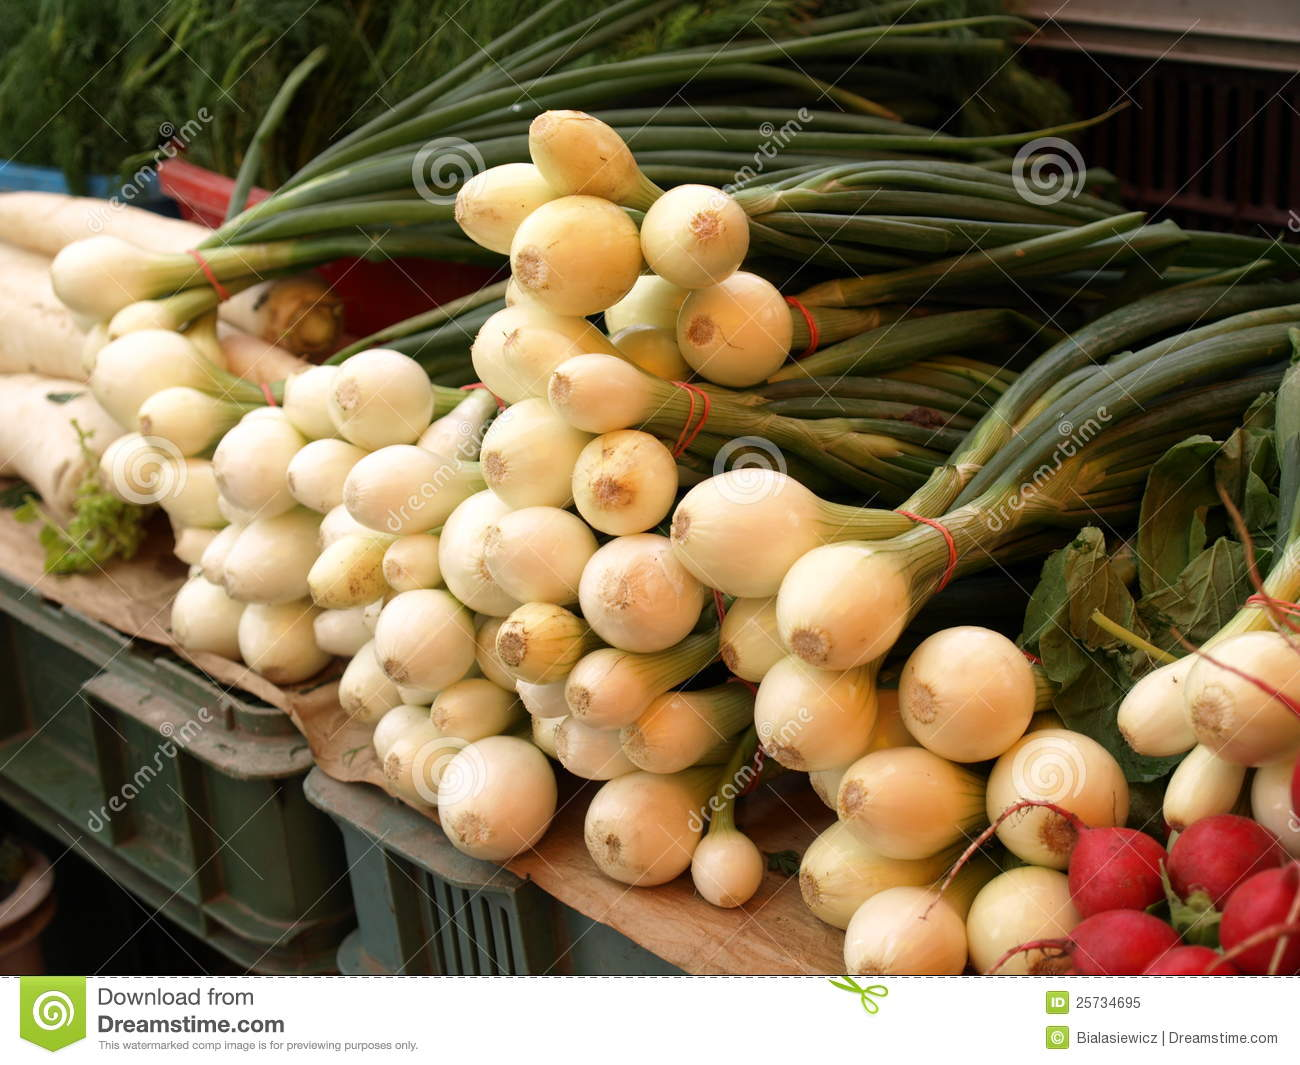 Onions from market